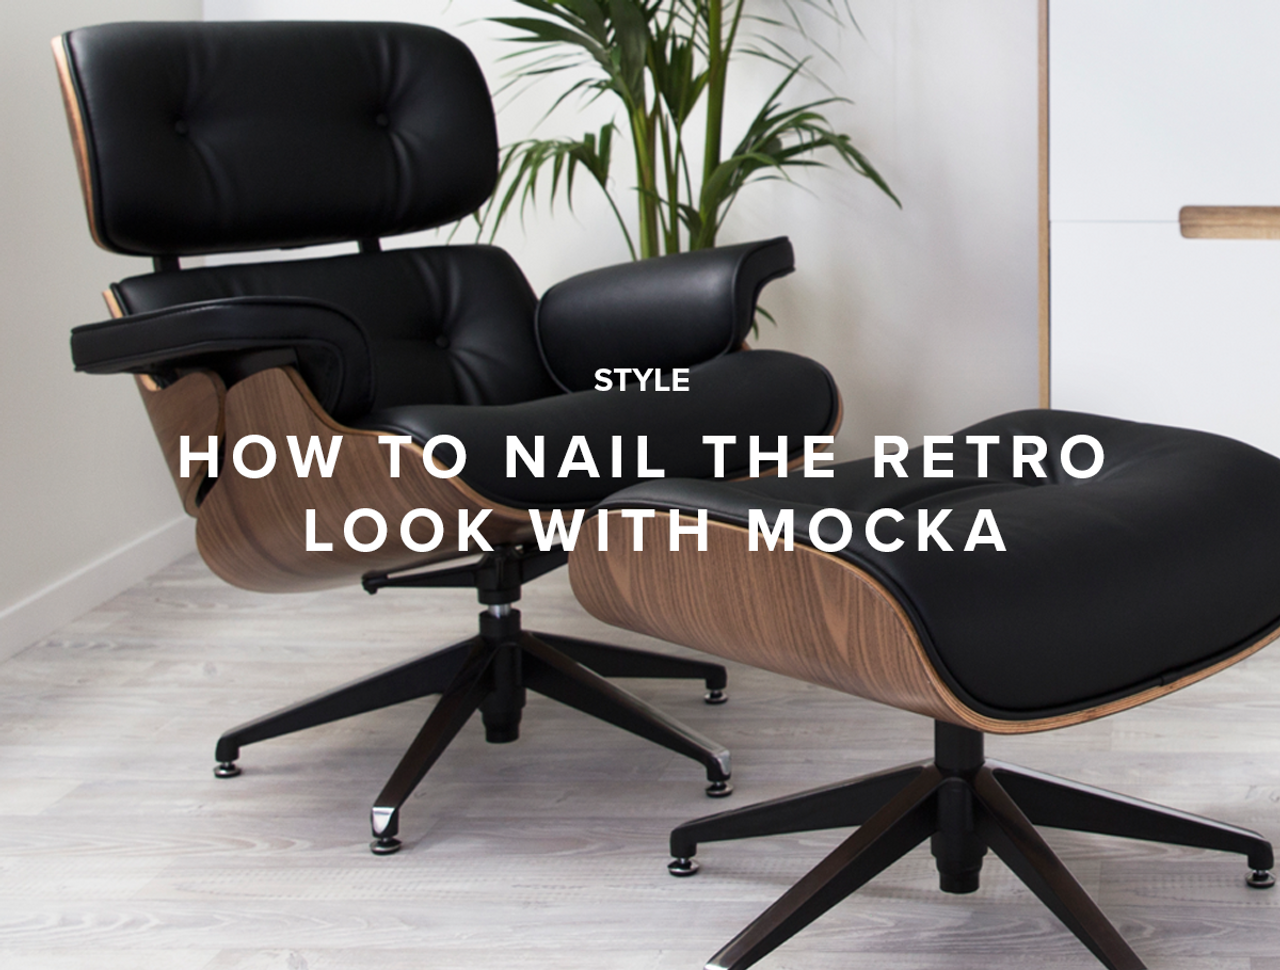 How to Nail the Retro Look with Mocka